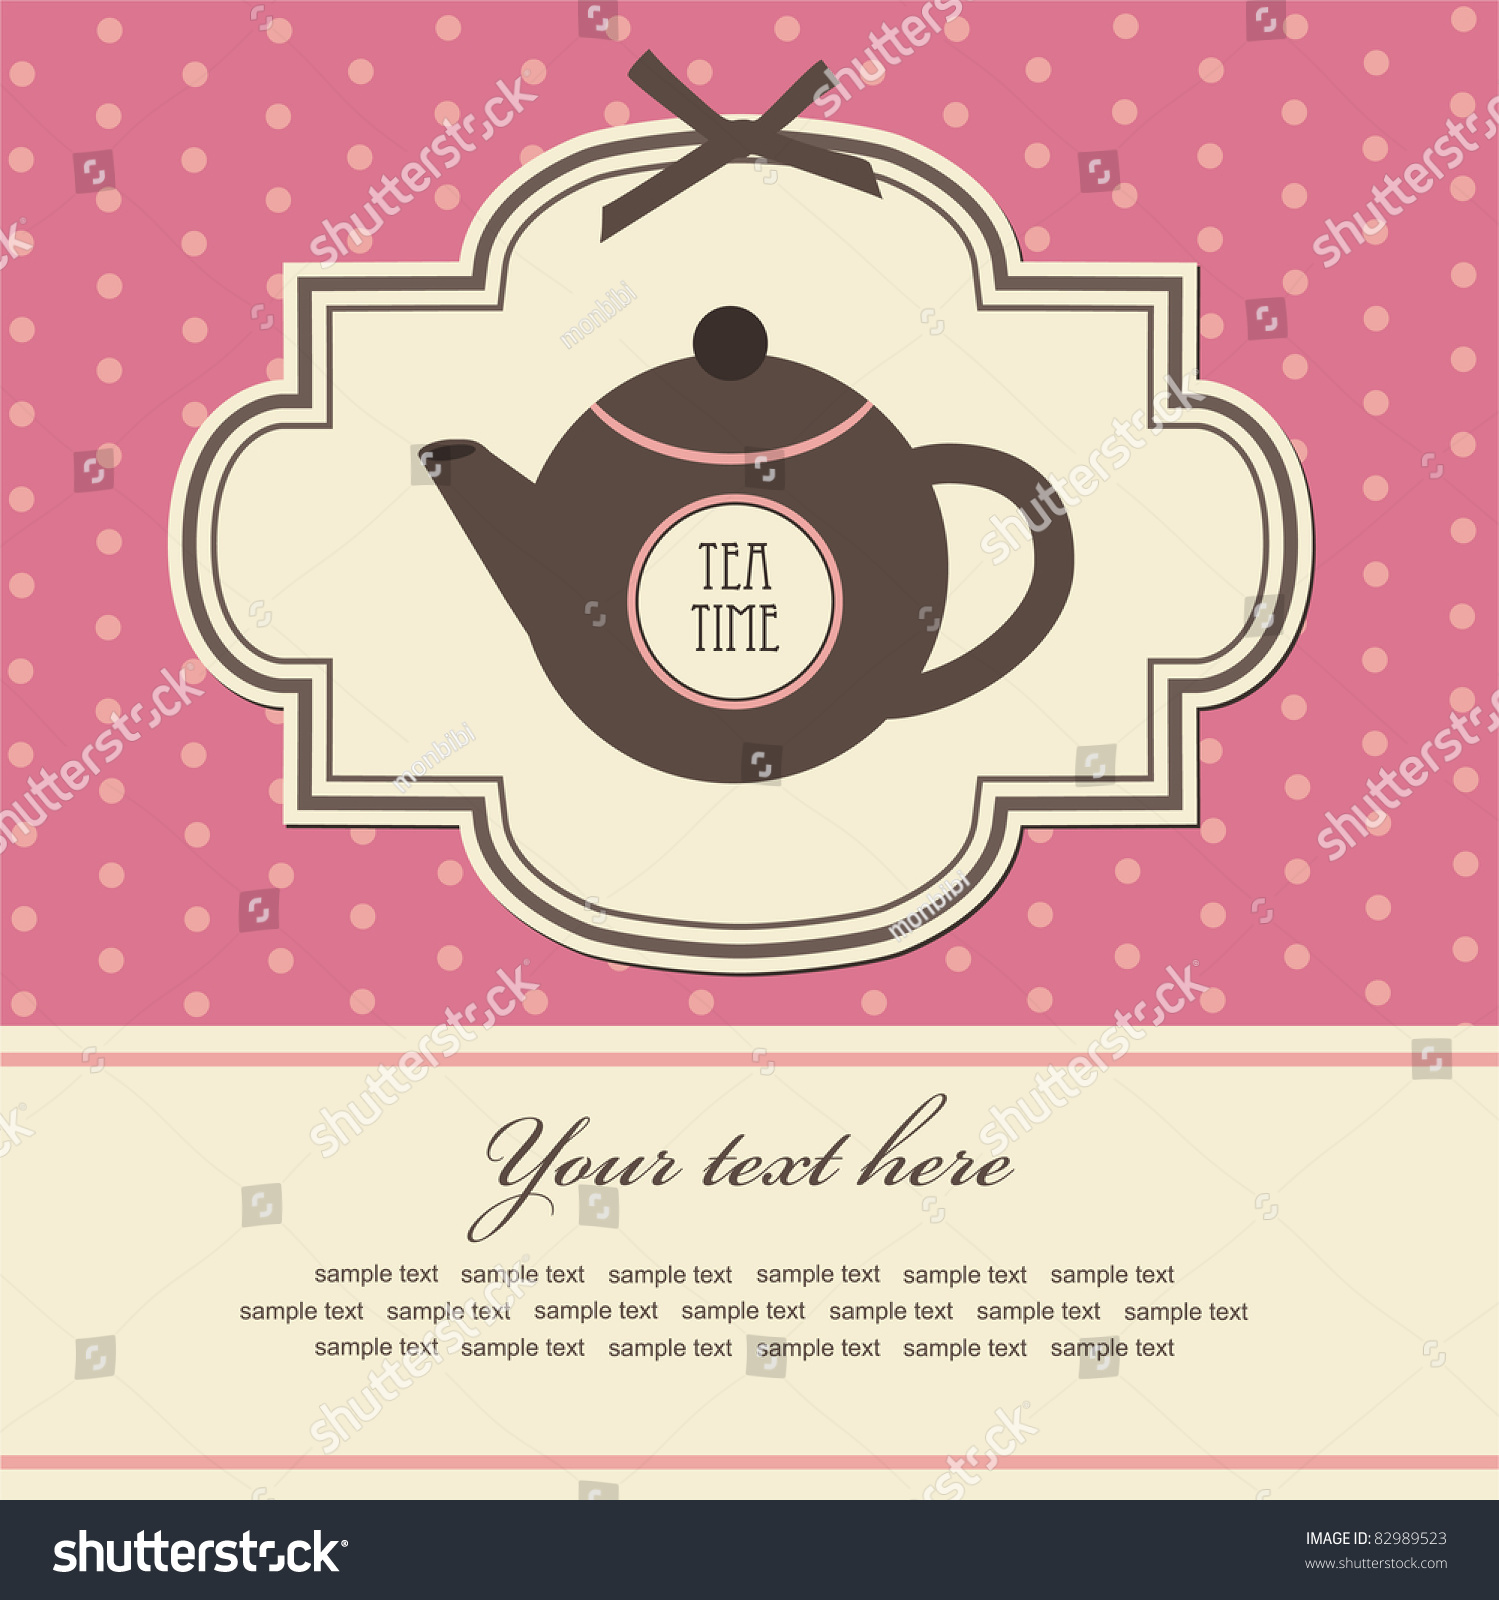 Vintage Card With Teapot. Vector Illustration - 82989523 ...